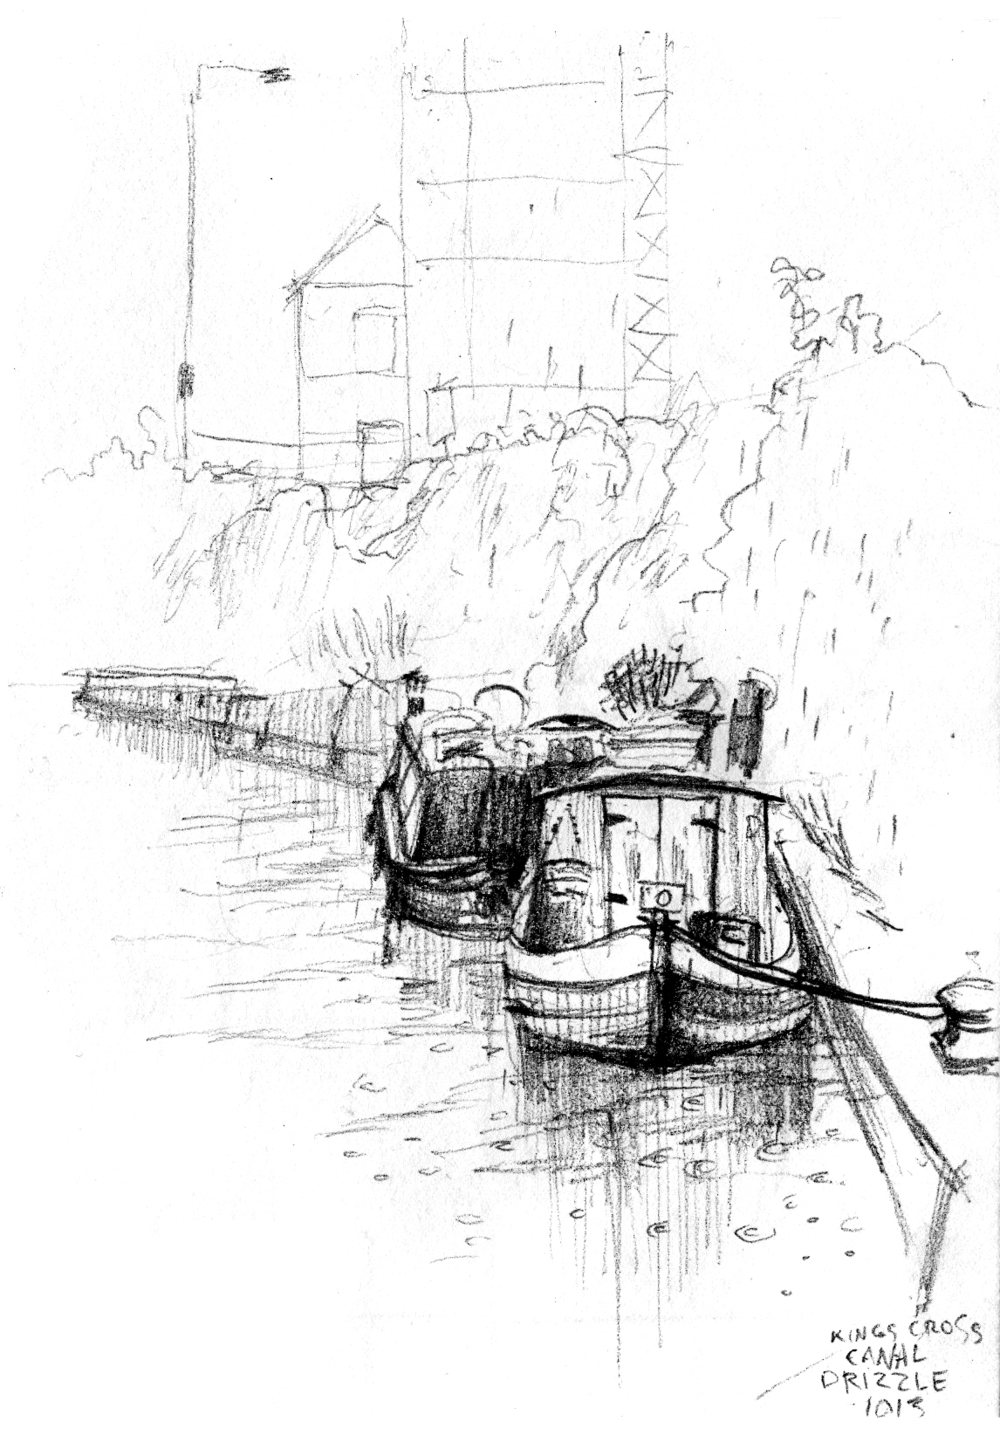 Boats on Regents Canal